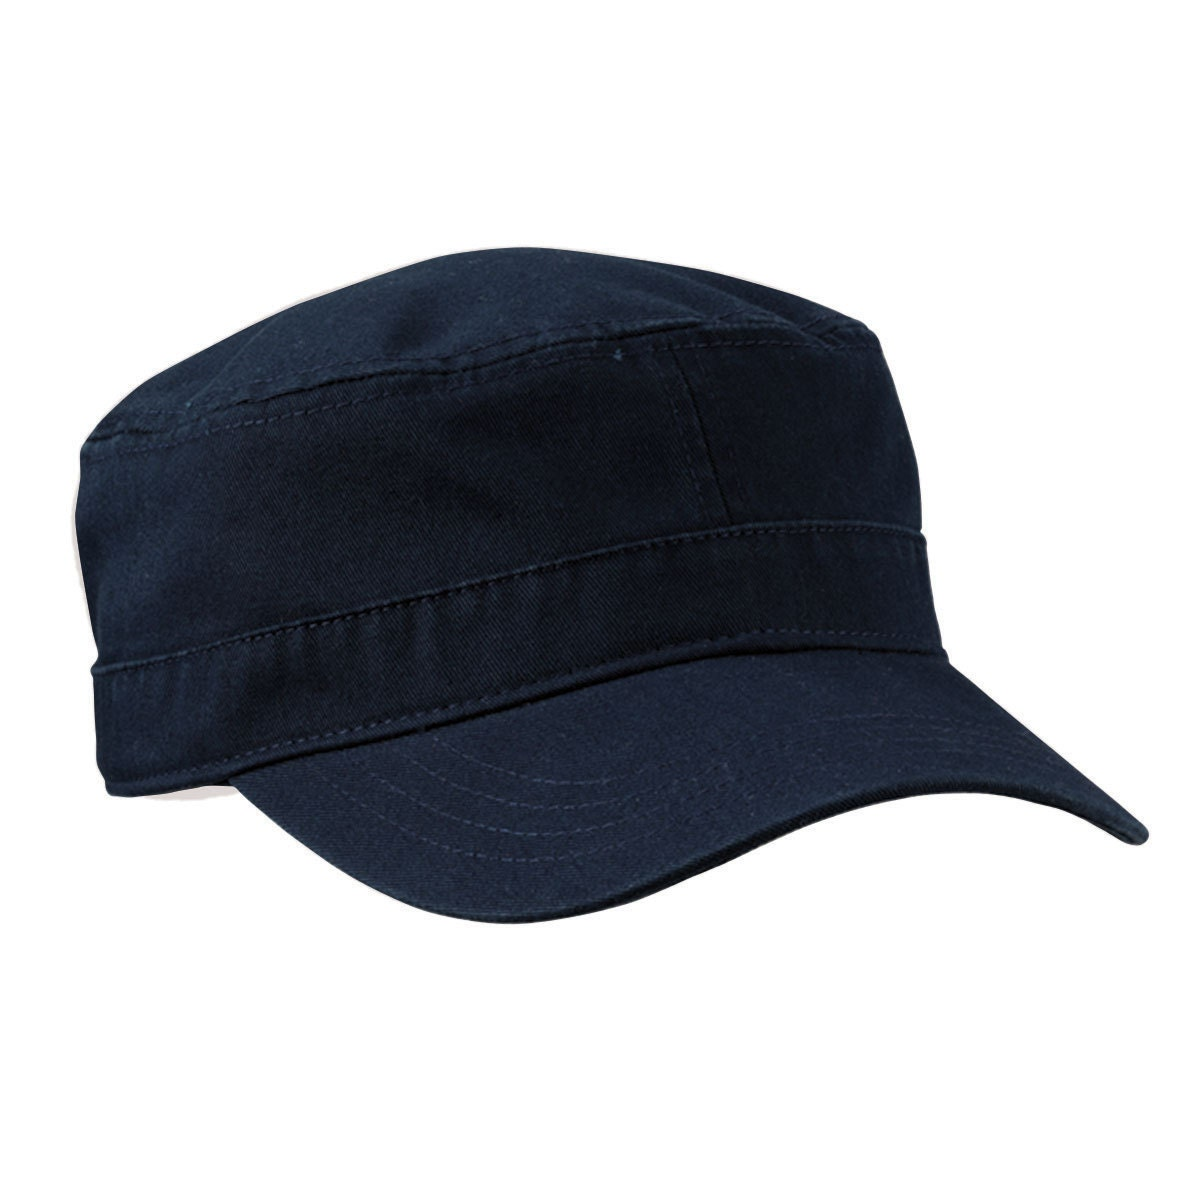 Beechfield B660 Snapback Cap navy/red with custom embroidery, about 5,5cm  high